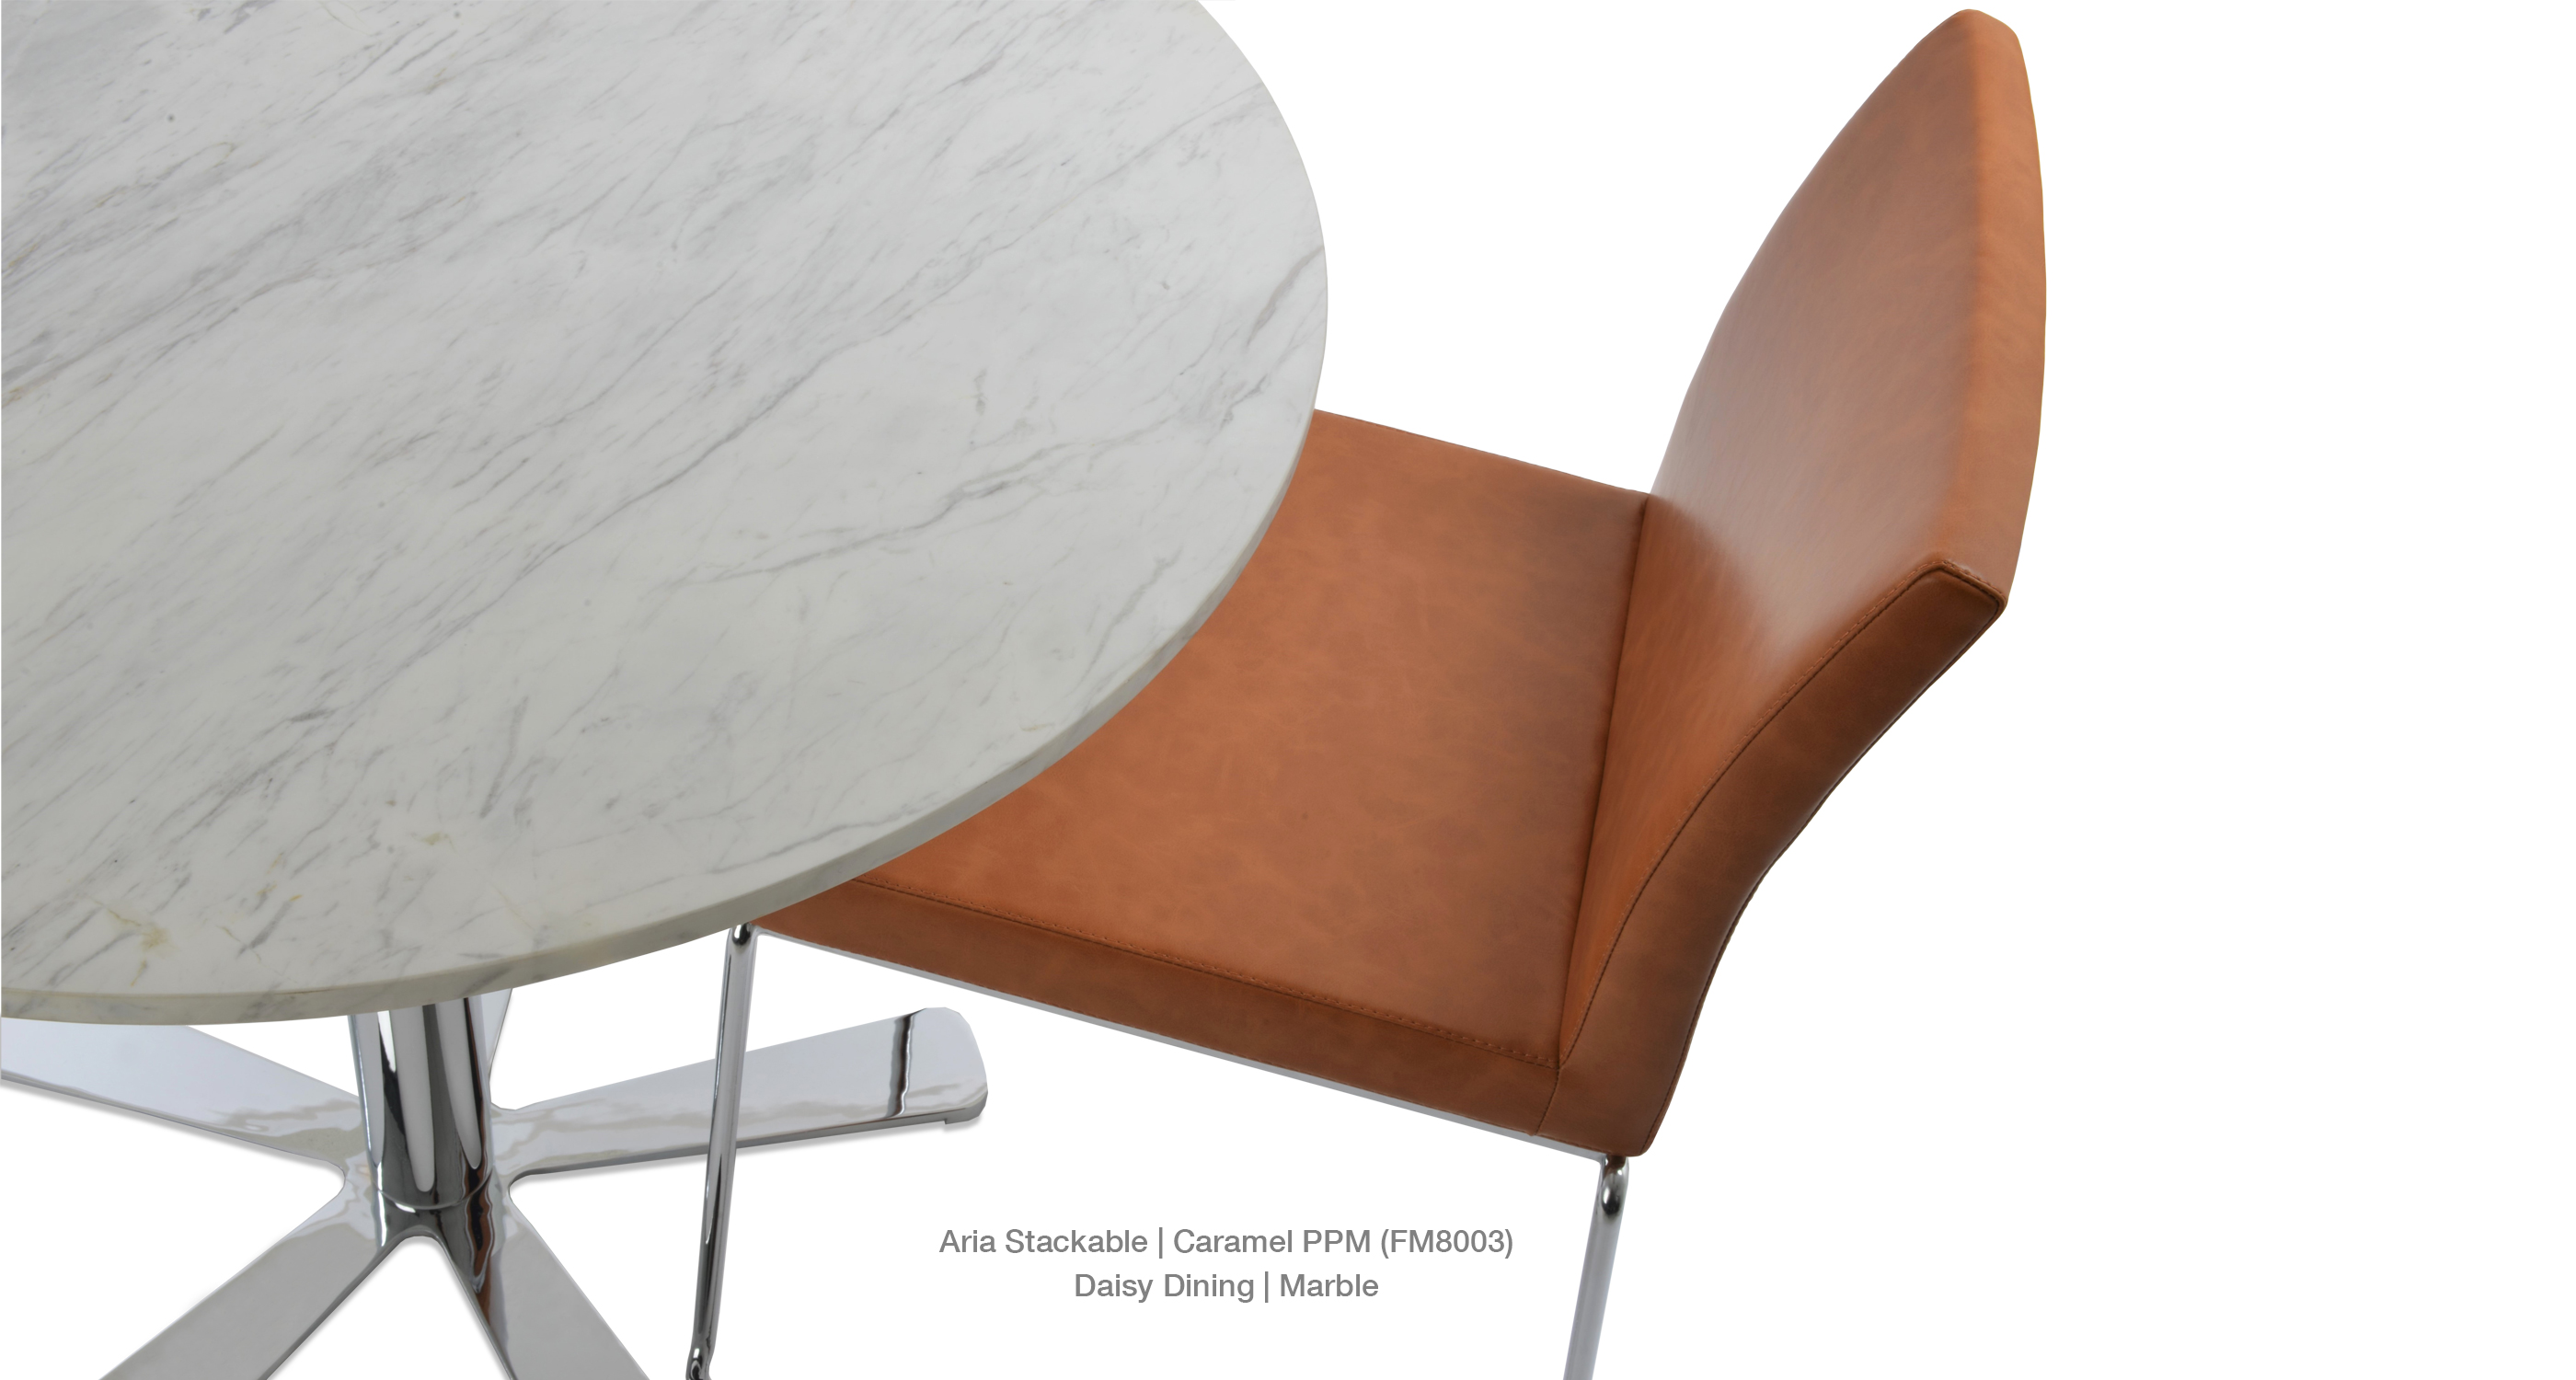 Aria Stackable Modern Chairs Sohoconcept